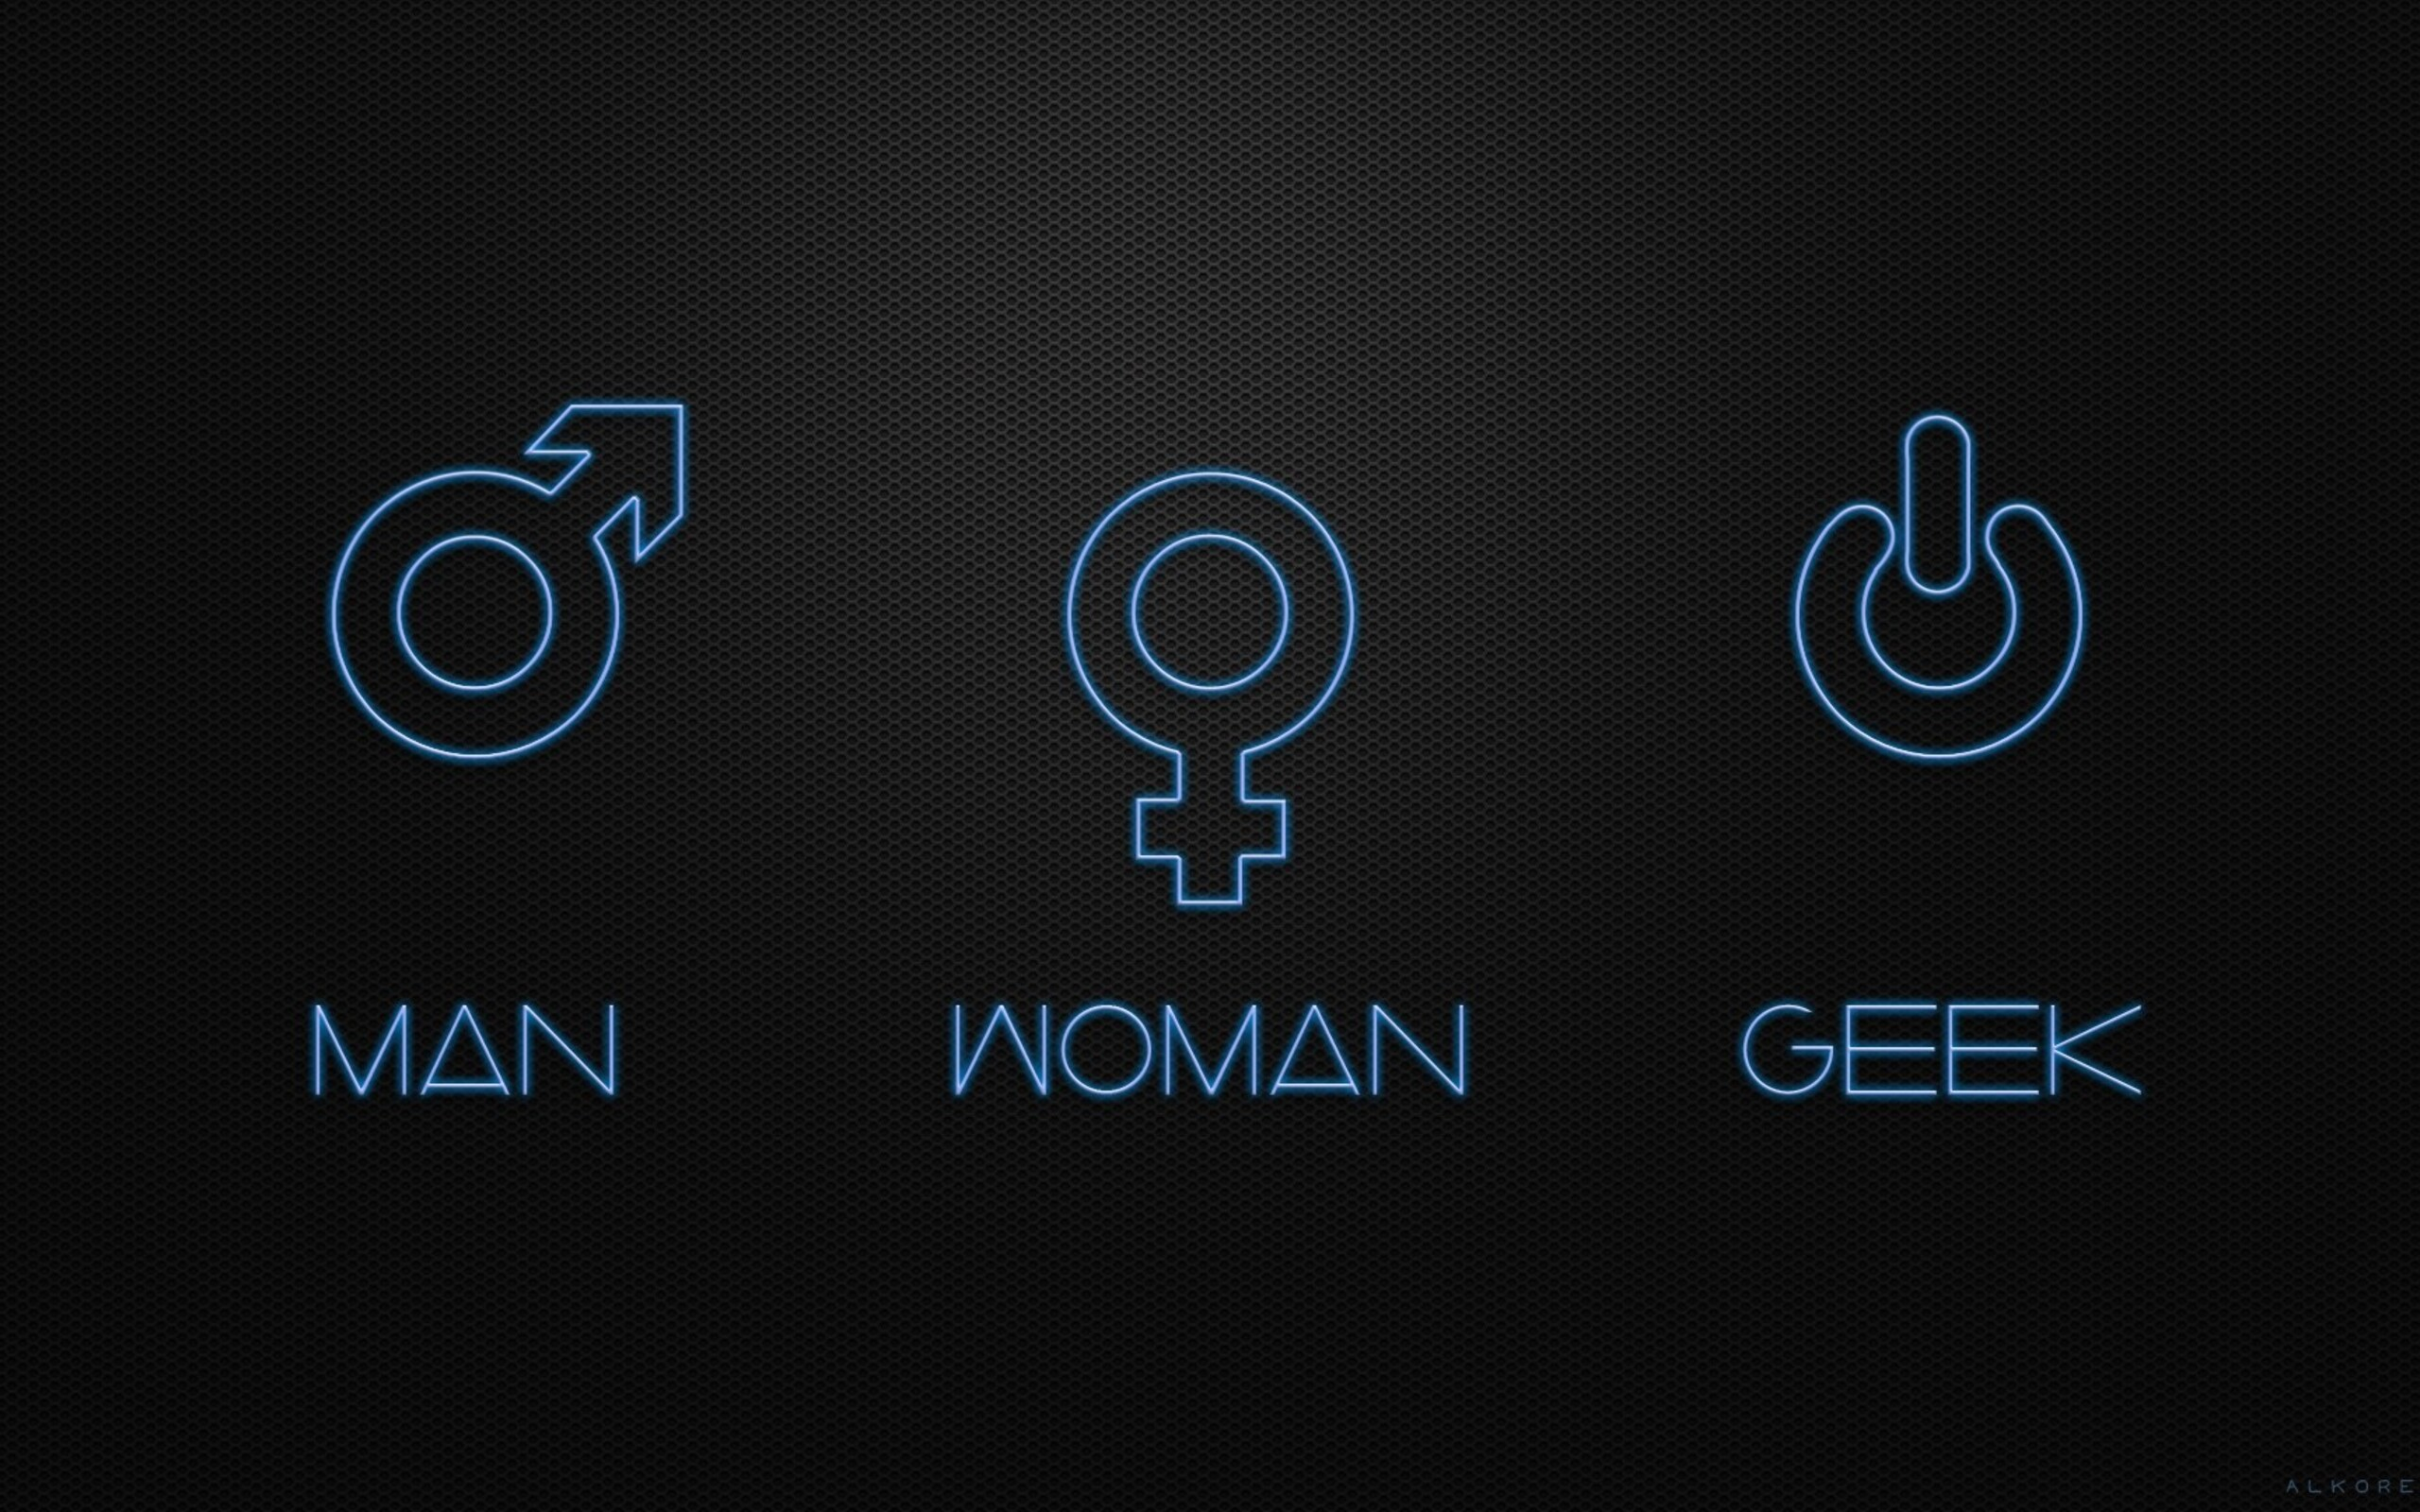 geek-minimalism-wallpaper.jpg